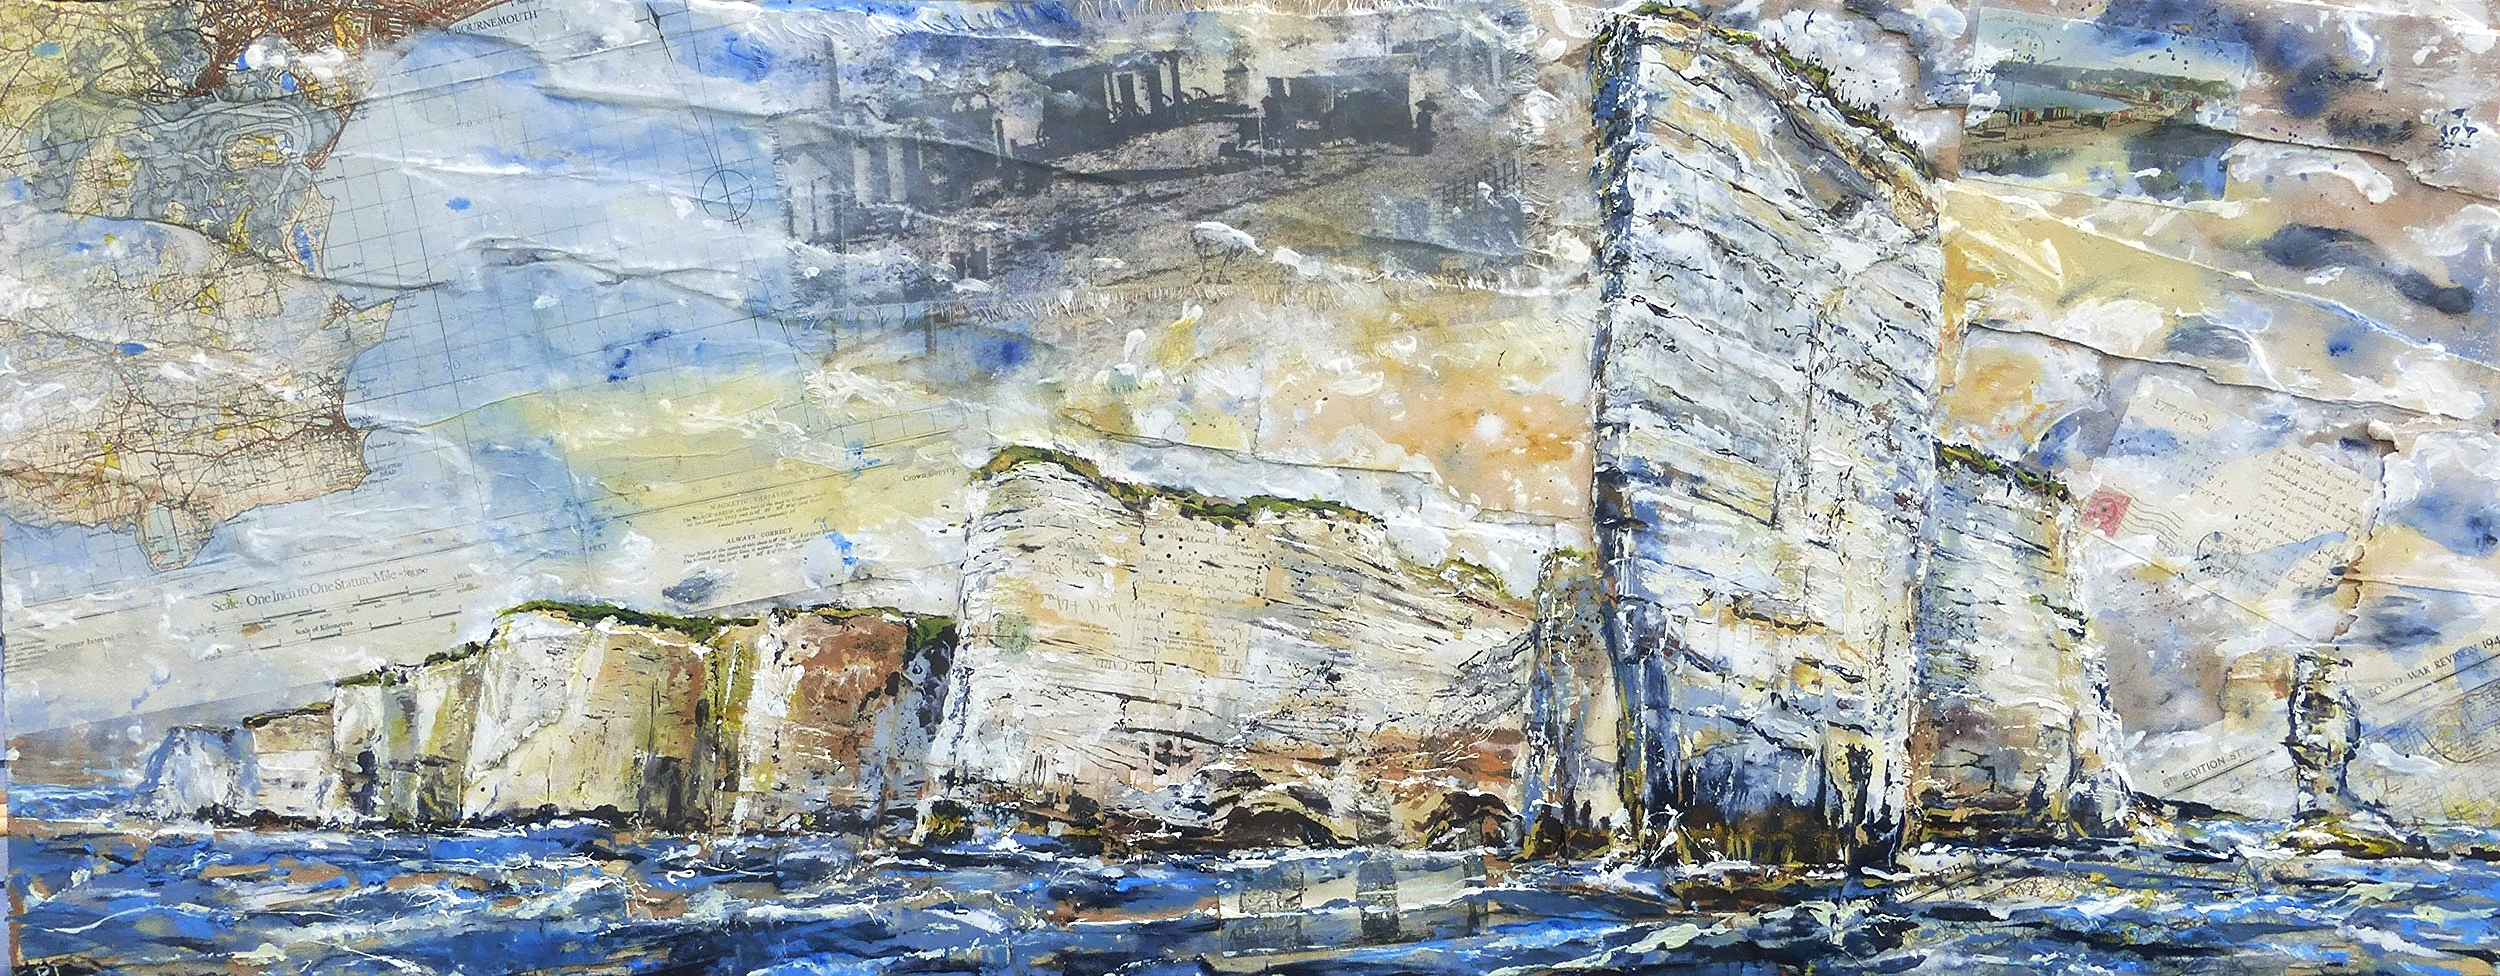 Old Harry Rock to Ballard Point, Purbeck Coast, Dorset. Oil, acrylic, photo-silkscreen and collage on wood.